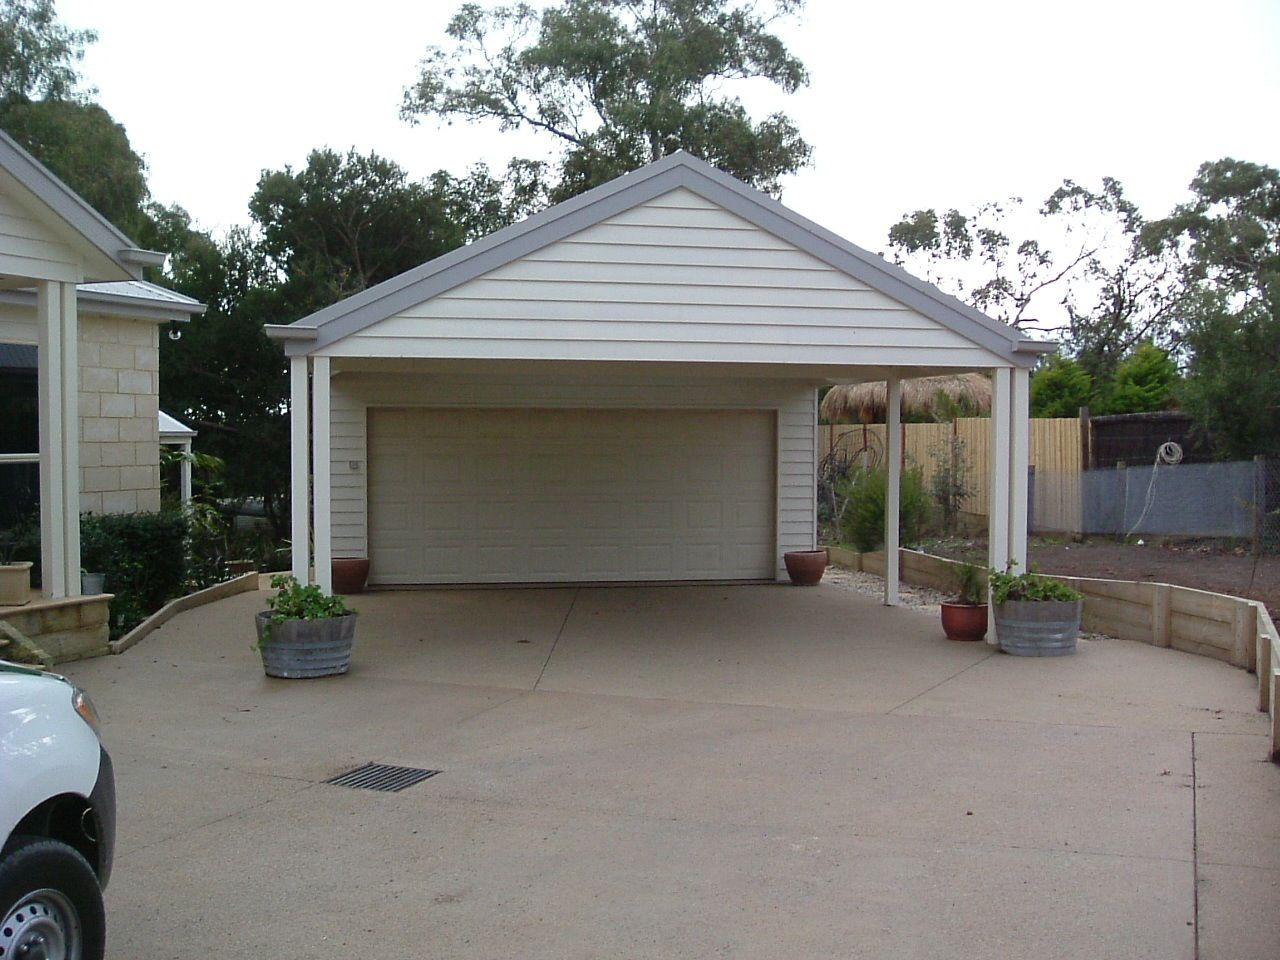 Carport ideas carport ideas pinterest carport ideas for Garage and carport combination